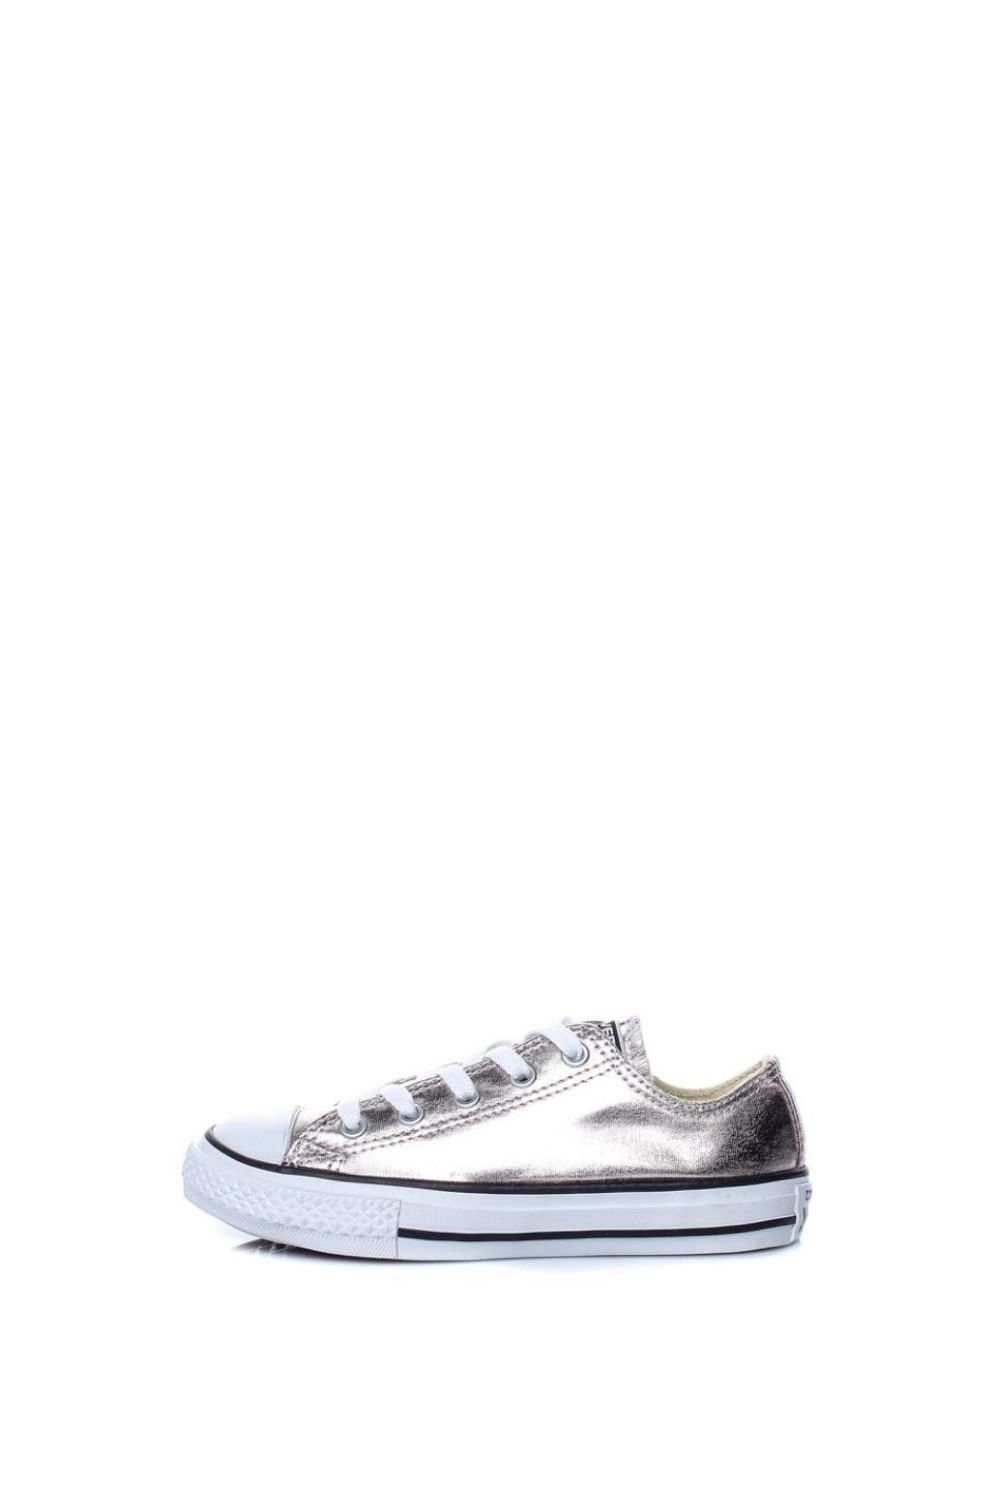 CONVERSE – Παιδικά sneakers CONVERSE Chuck Taylor All Star Ox ασημί